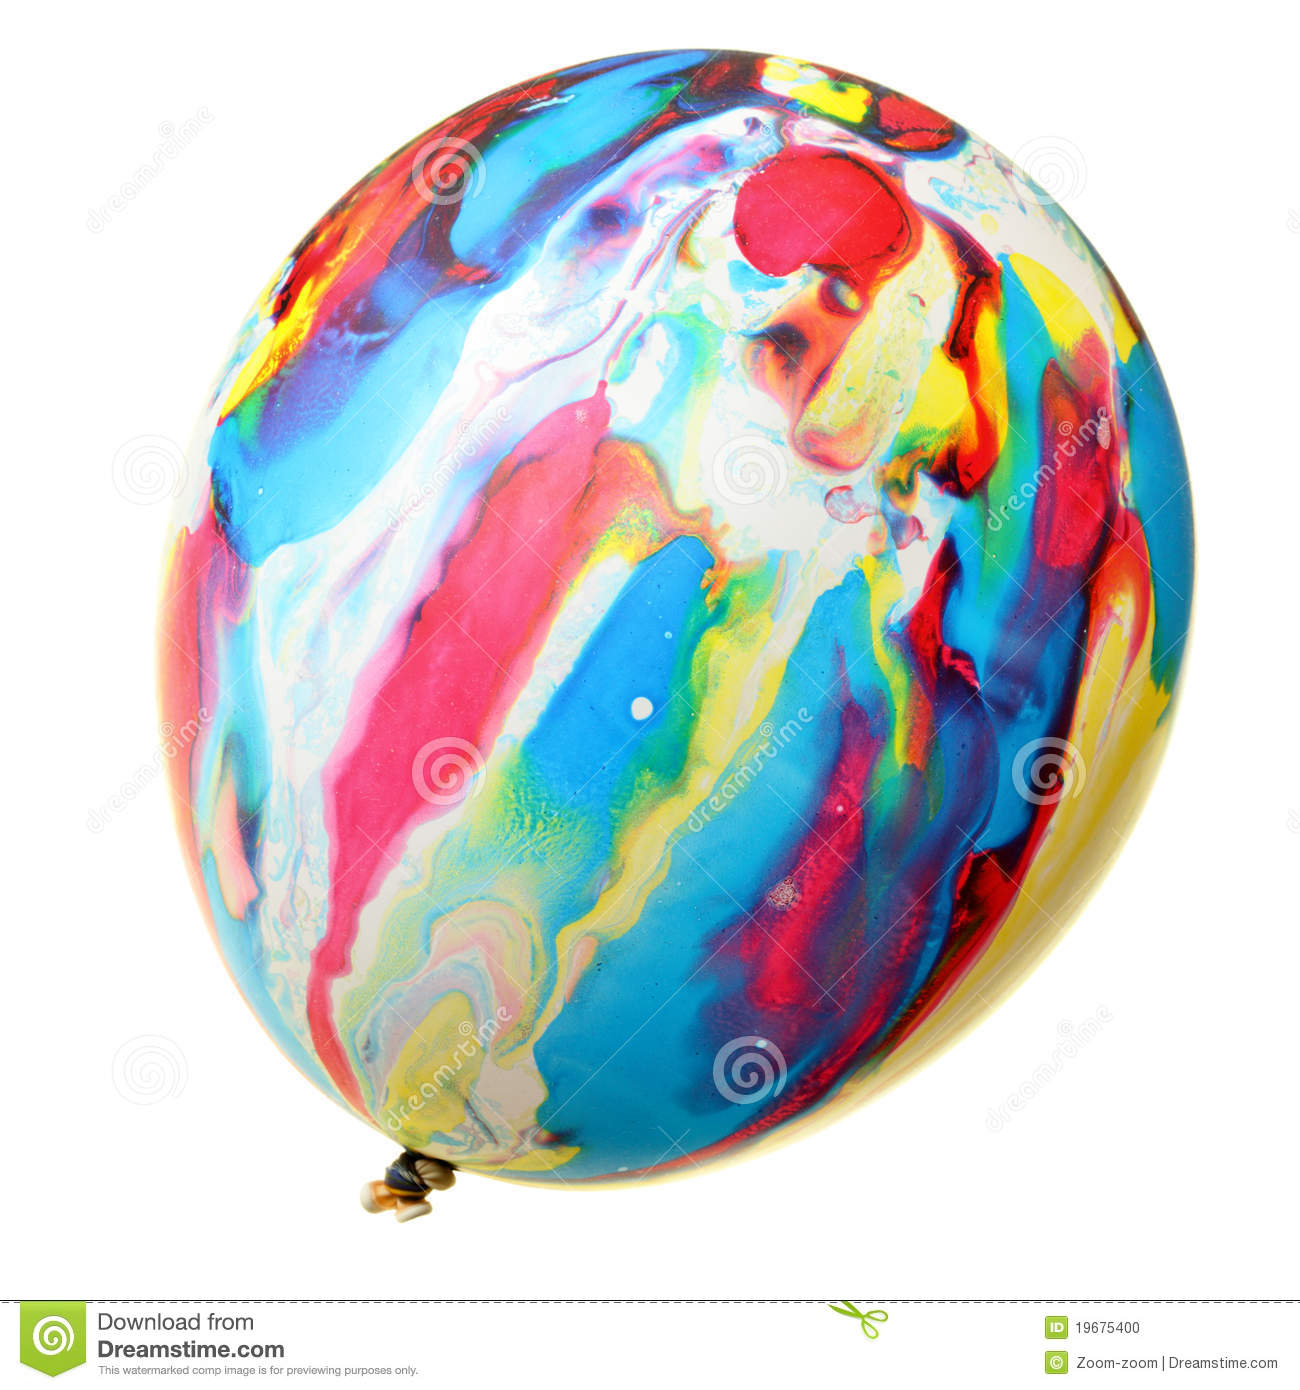 Painted colorful balloon